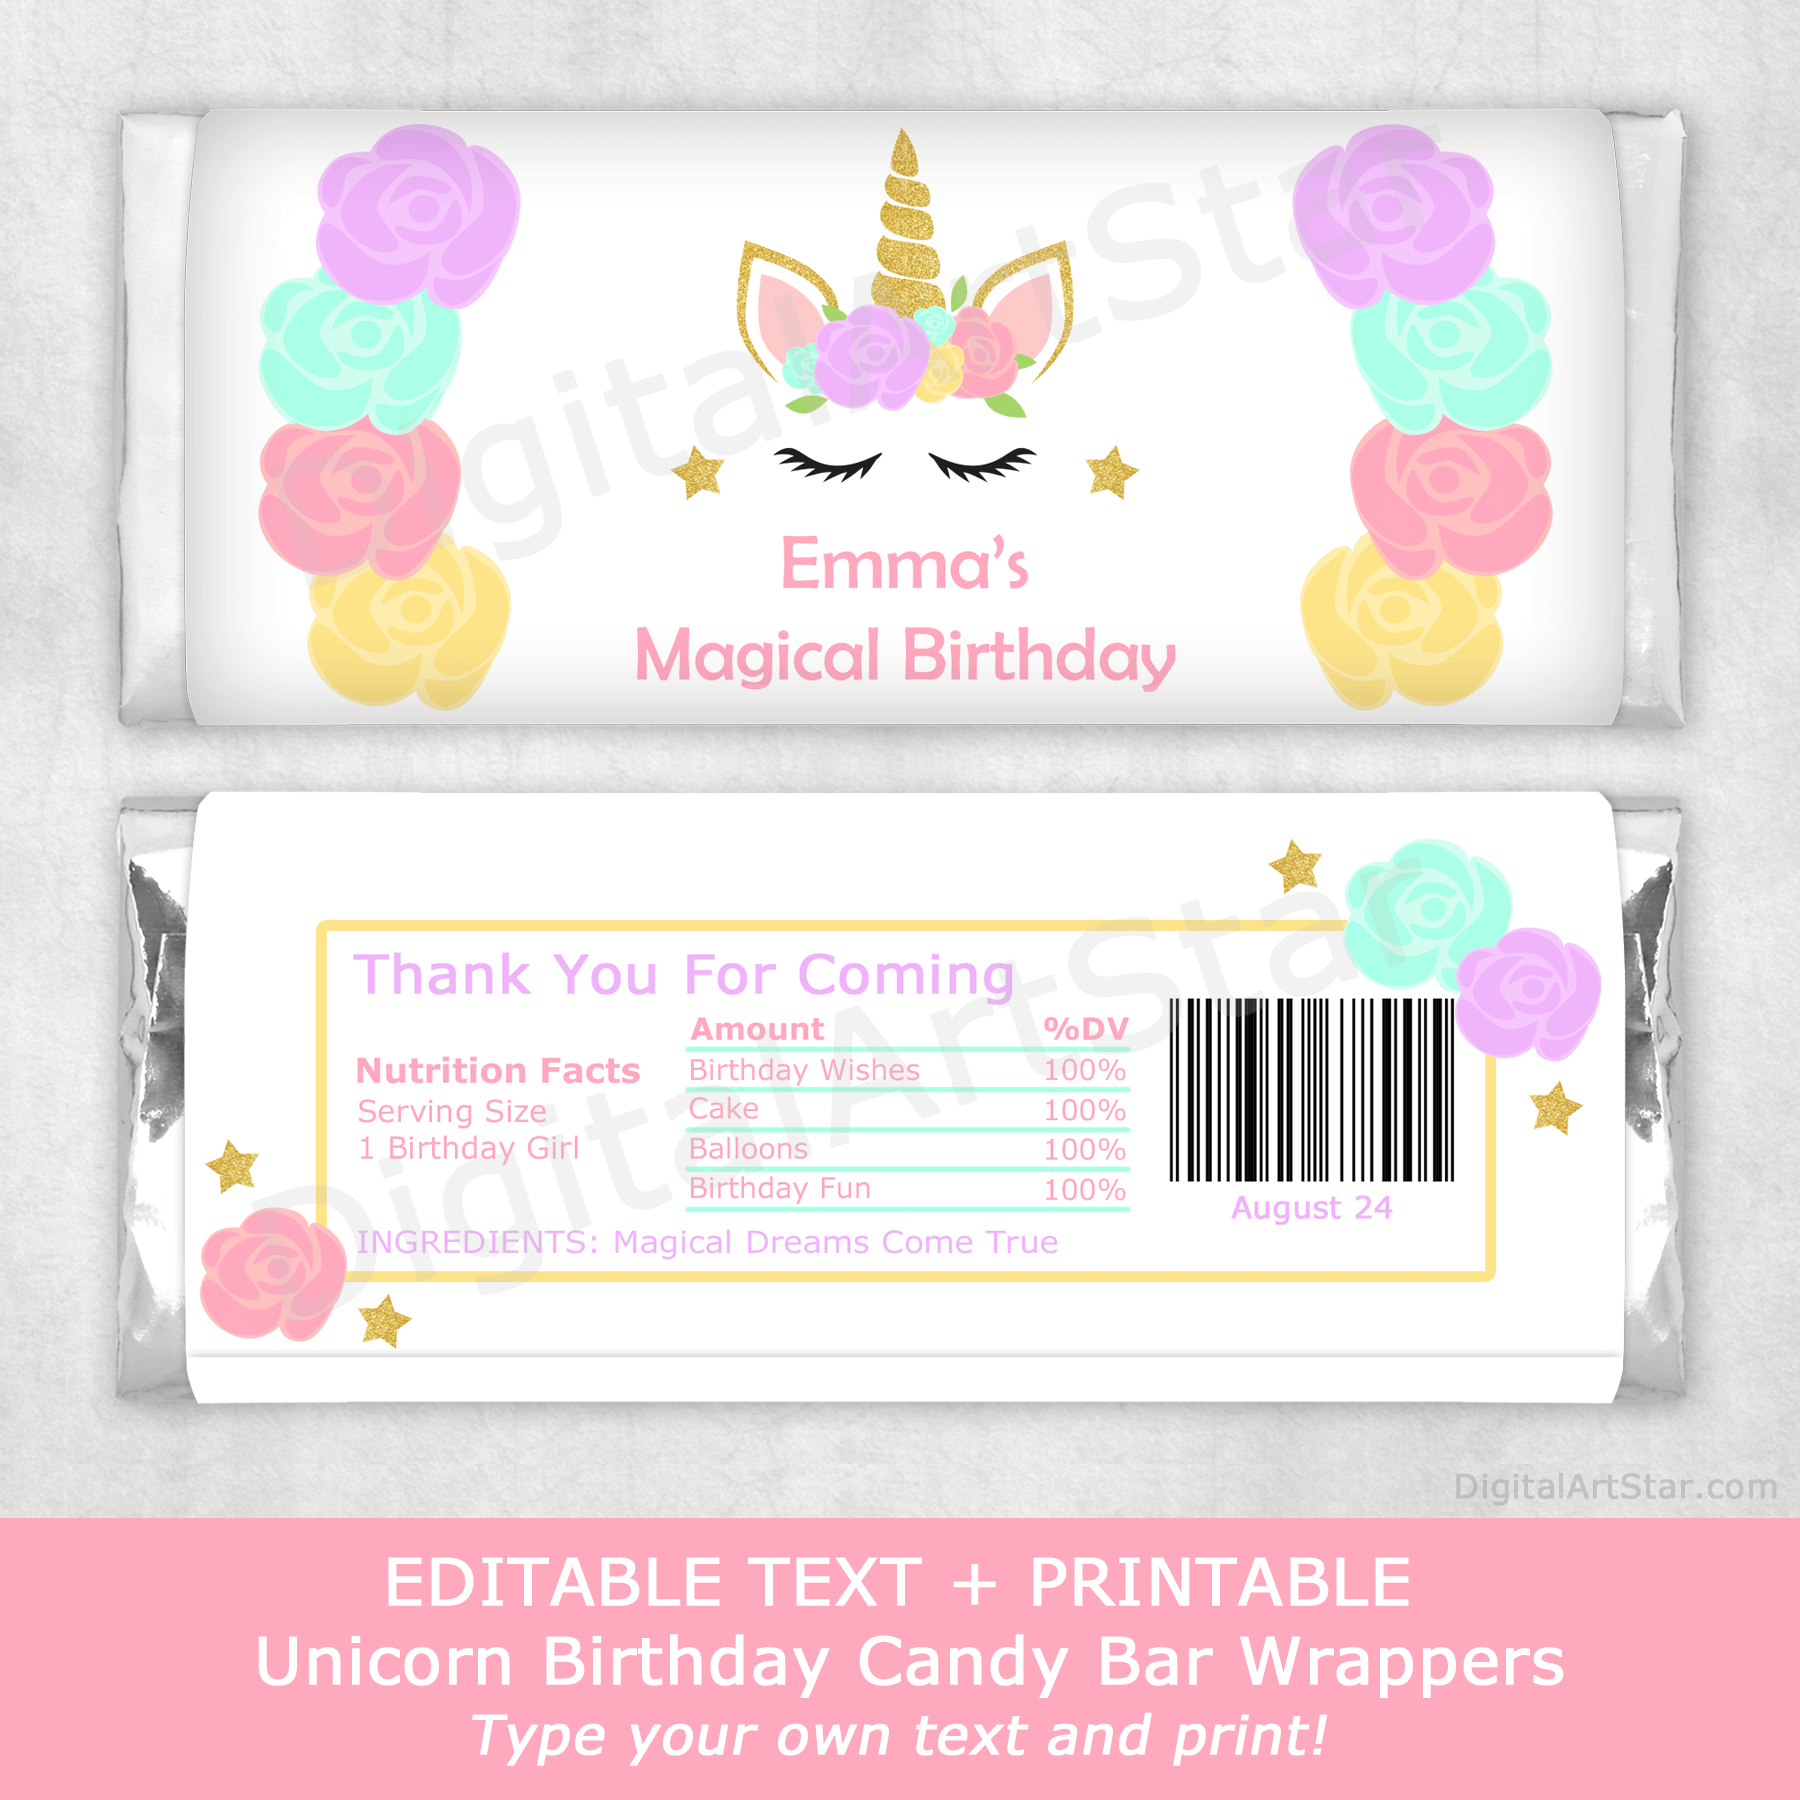 Unicorn Birthday Party Supplies - Printable Candy Bar Wrappers